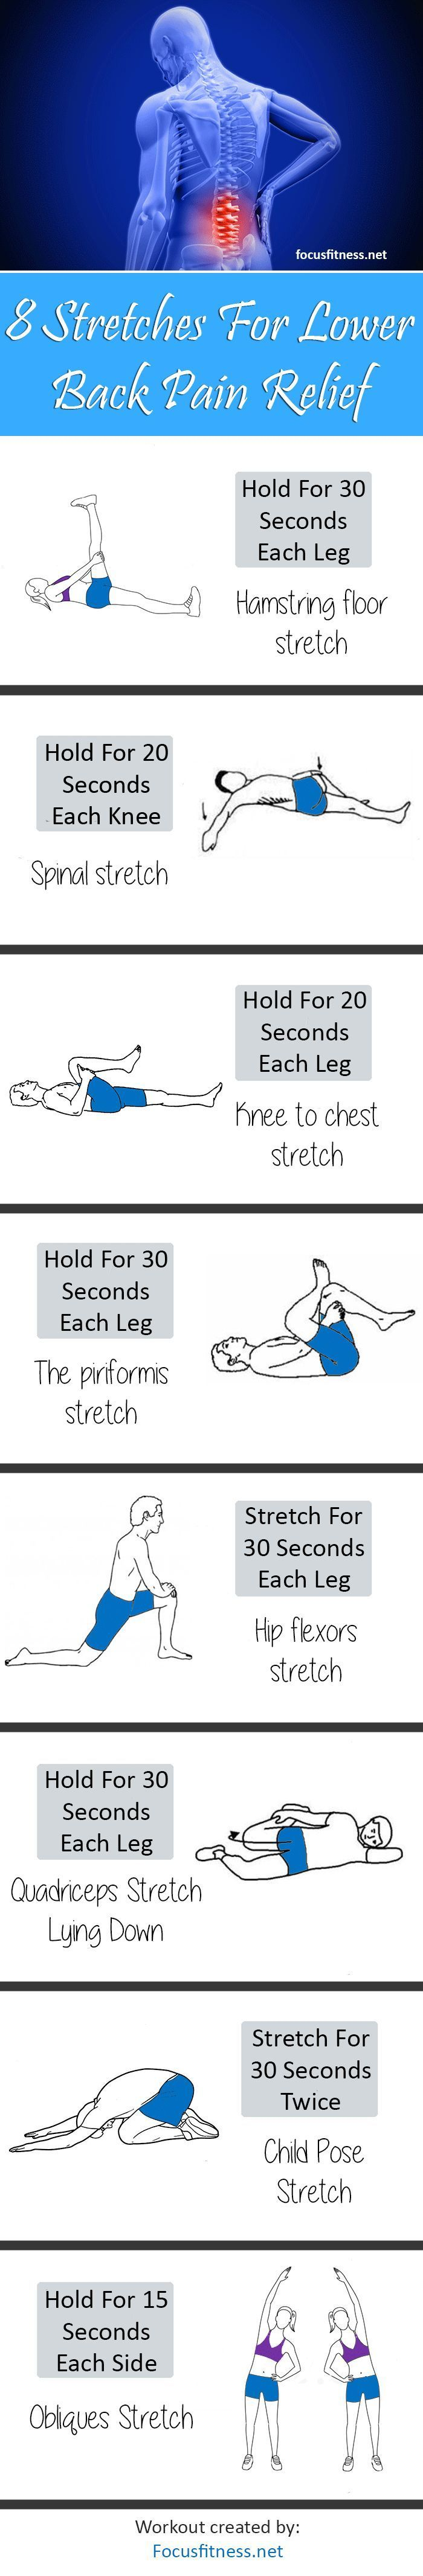 8 Stretch Exercises For Lower Back Pain Relief - http://focusfitness.net/8-stretch-exercises-lower-back-pain-relief/